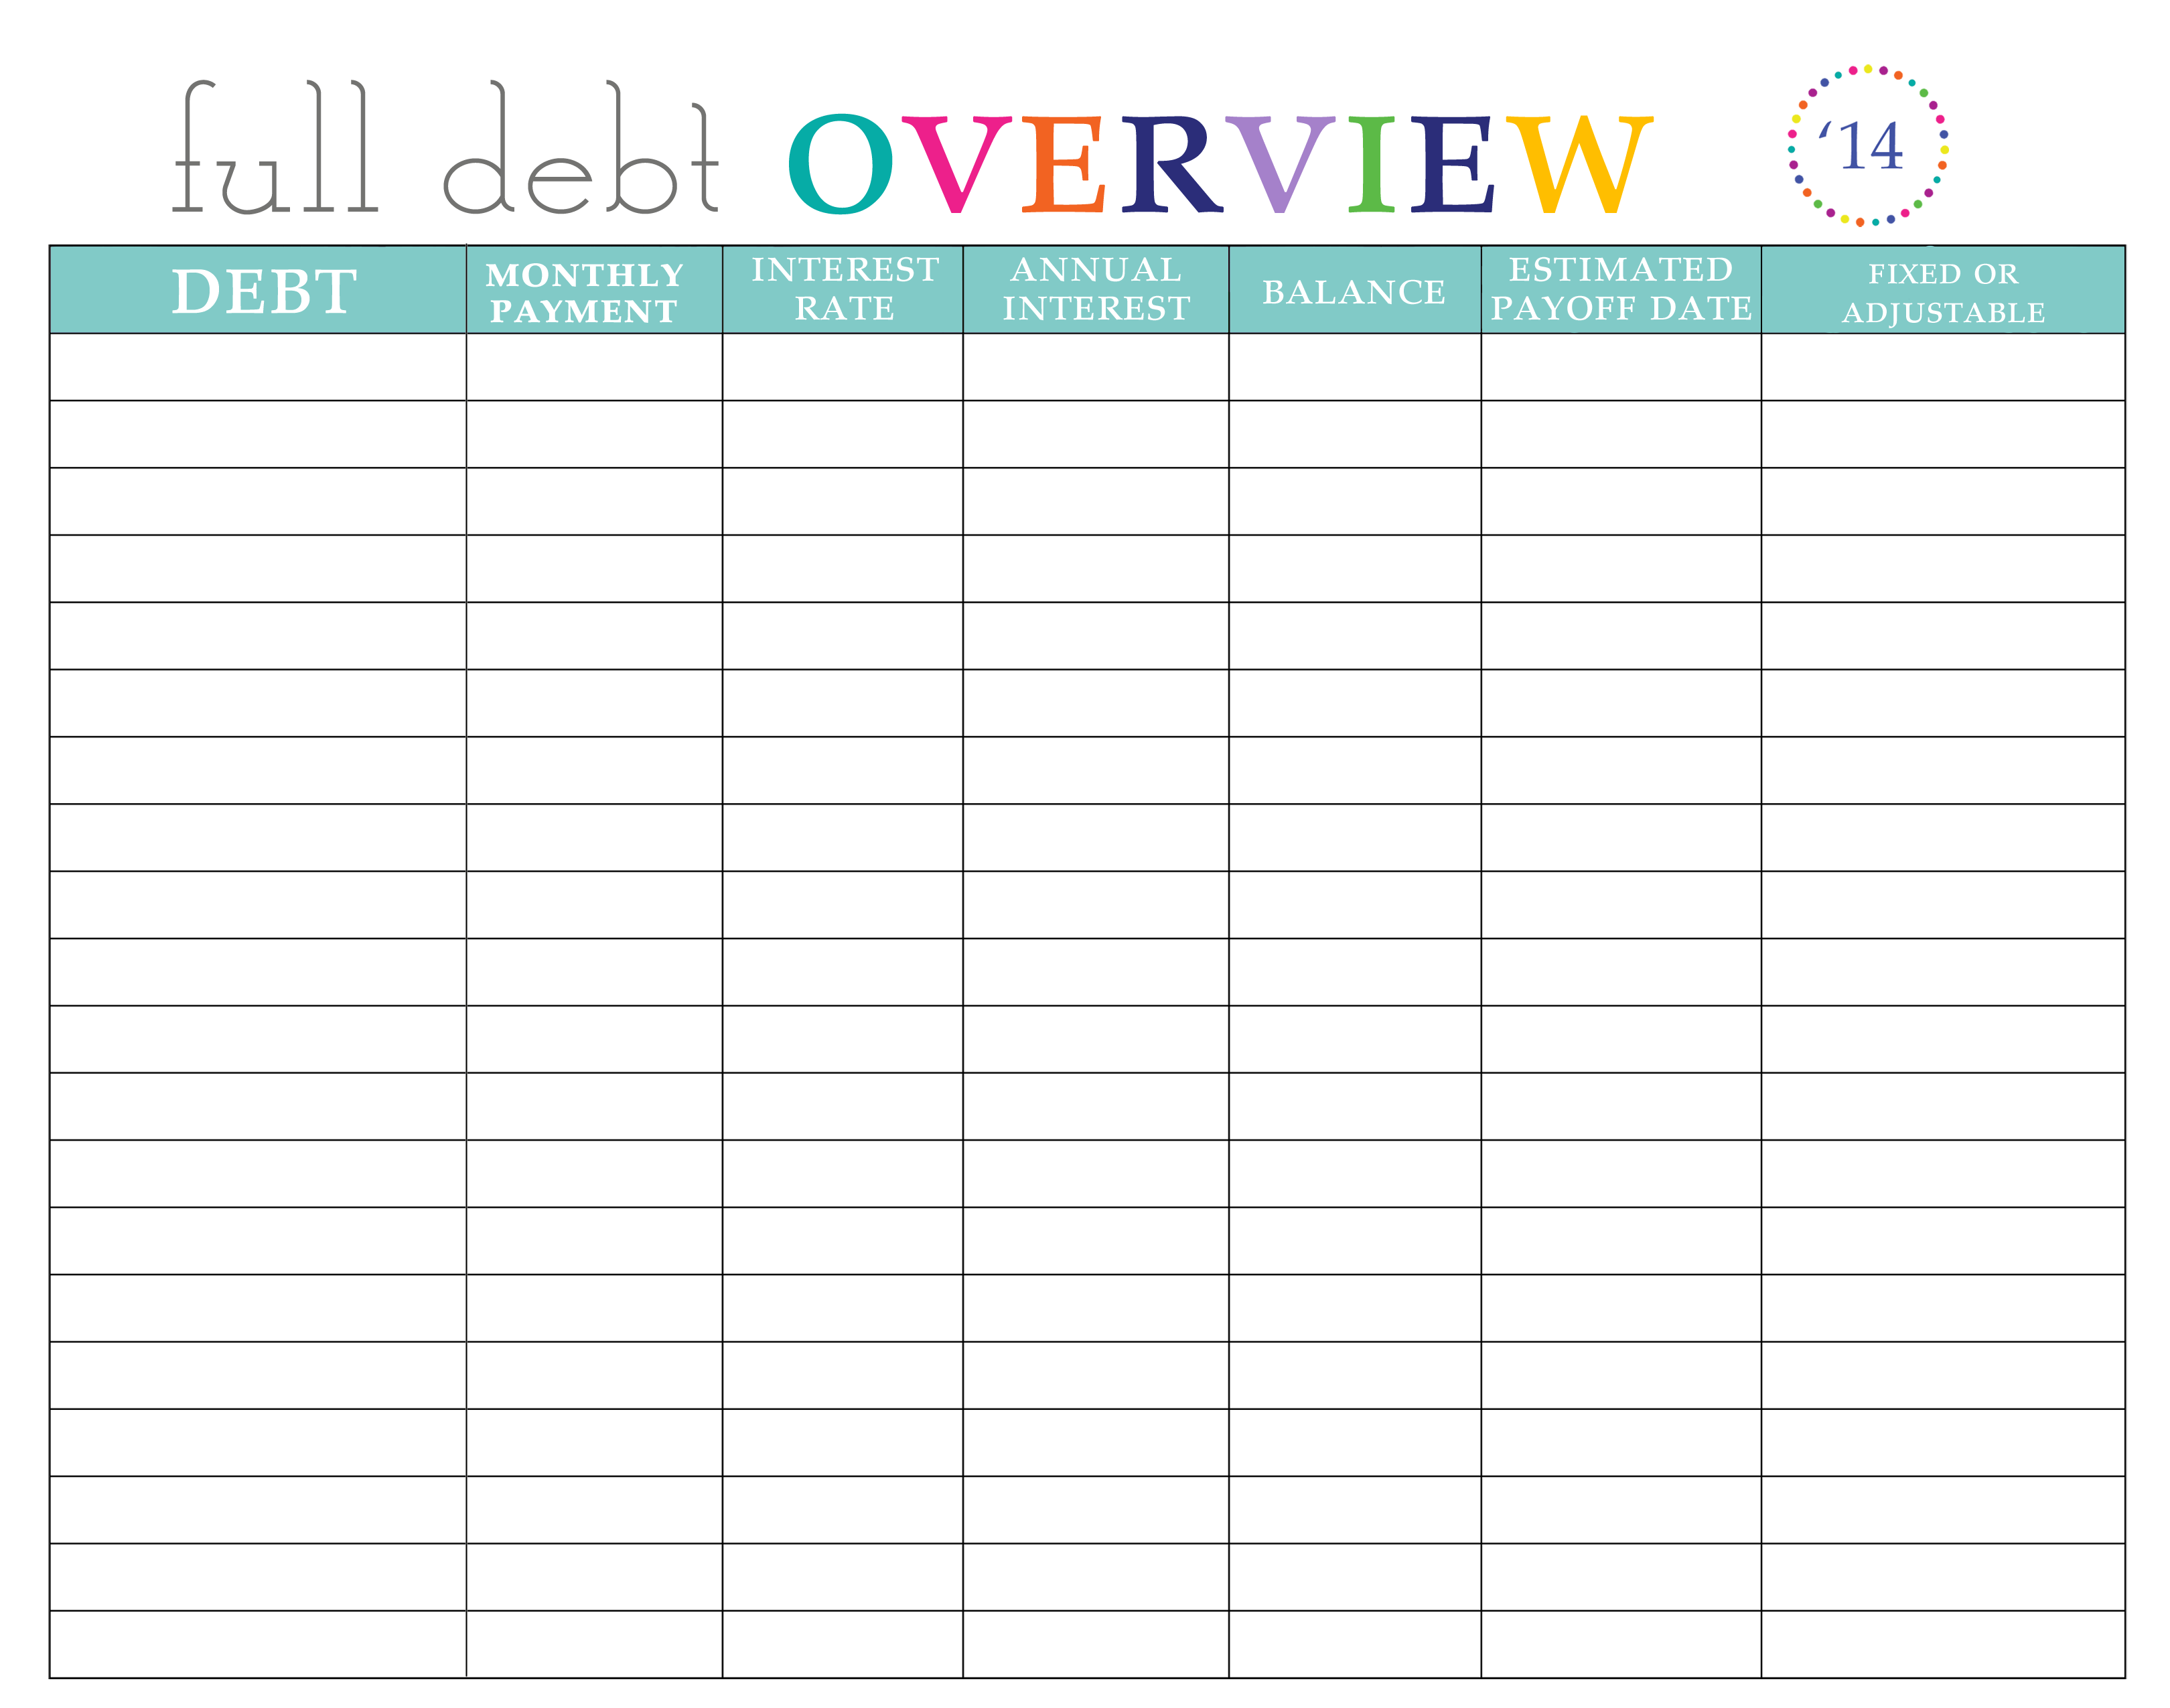 amortization schedule free printable